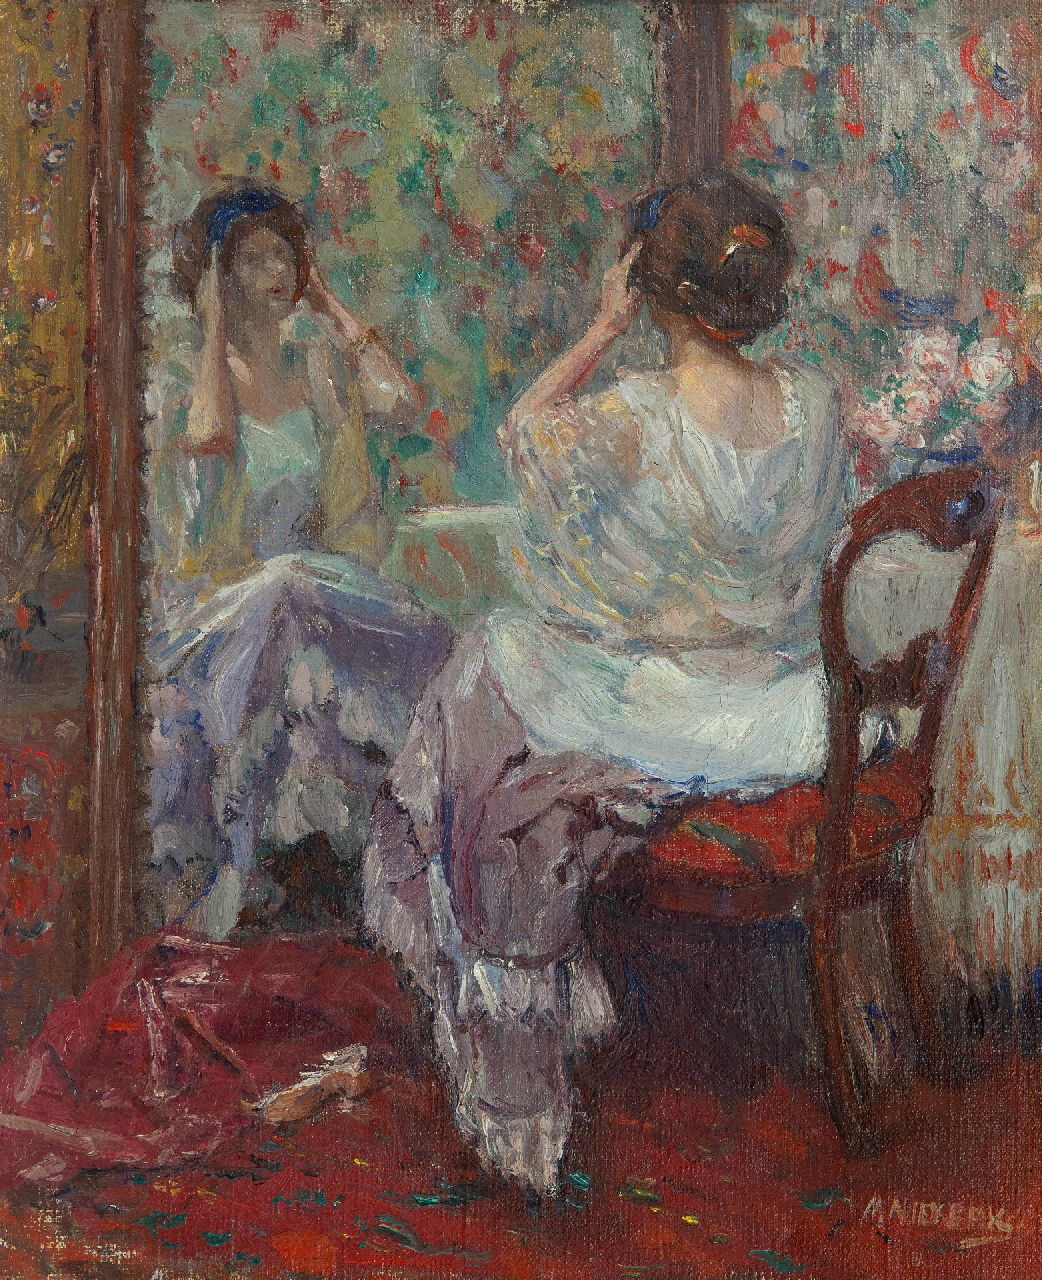 Niekerk M.J.  | 'Maurits' Joseph Niekerk | Paintings offered for sale | Lady in front of the mirror, oil on canvas 54.3 x 44.5 cm, signed l.r.